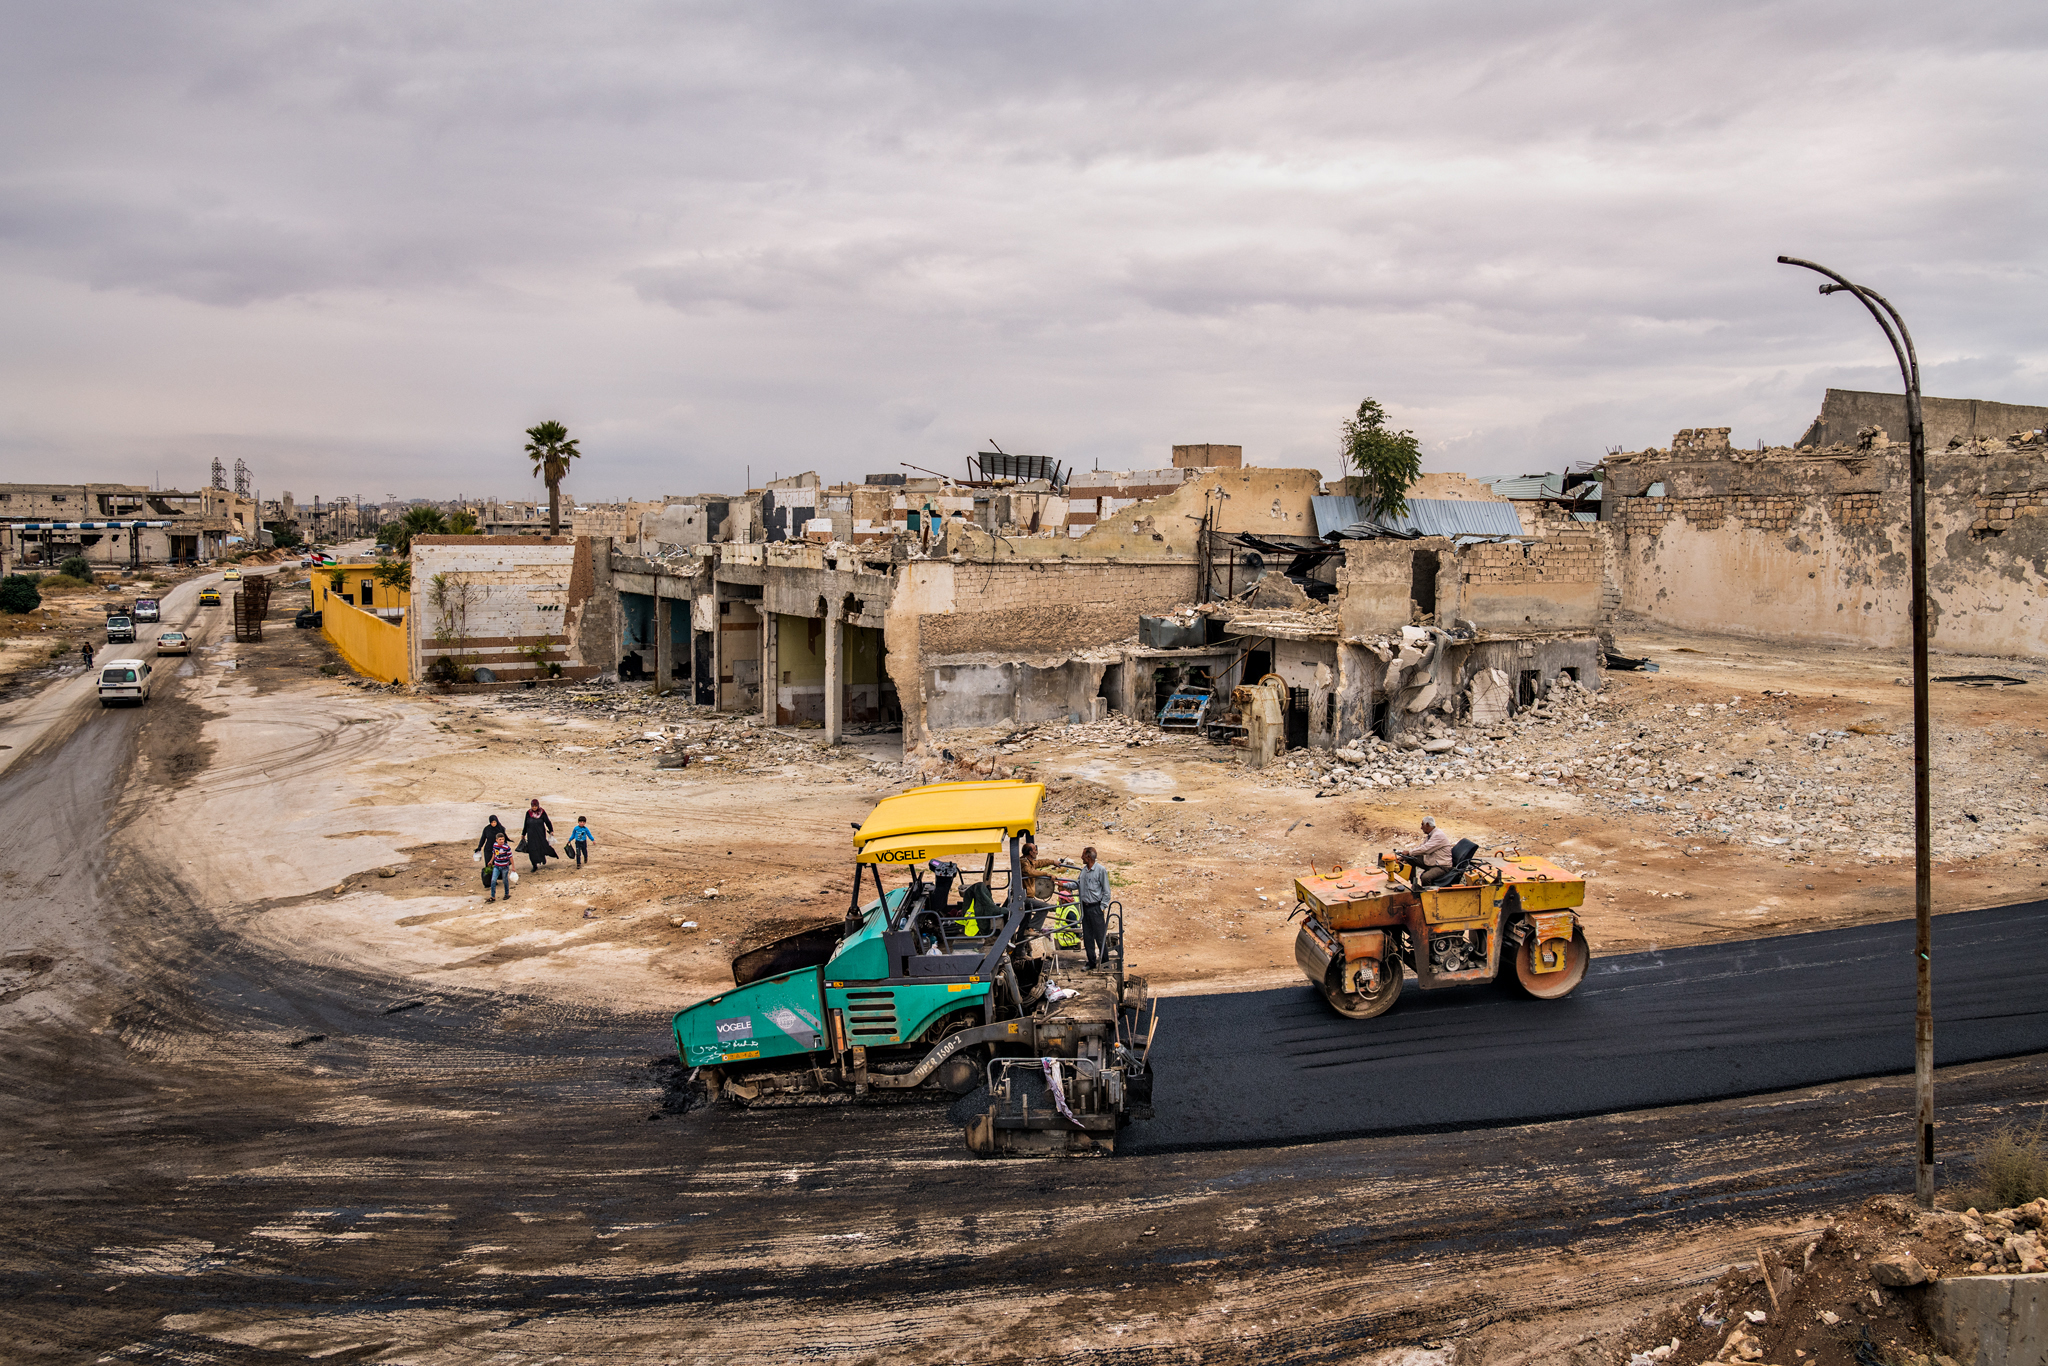 Construction workers carrying out asphalting works near Aleppo Airport in east Aleppo - February 2019 (National Geographic)